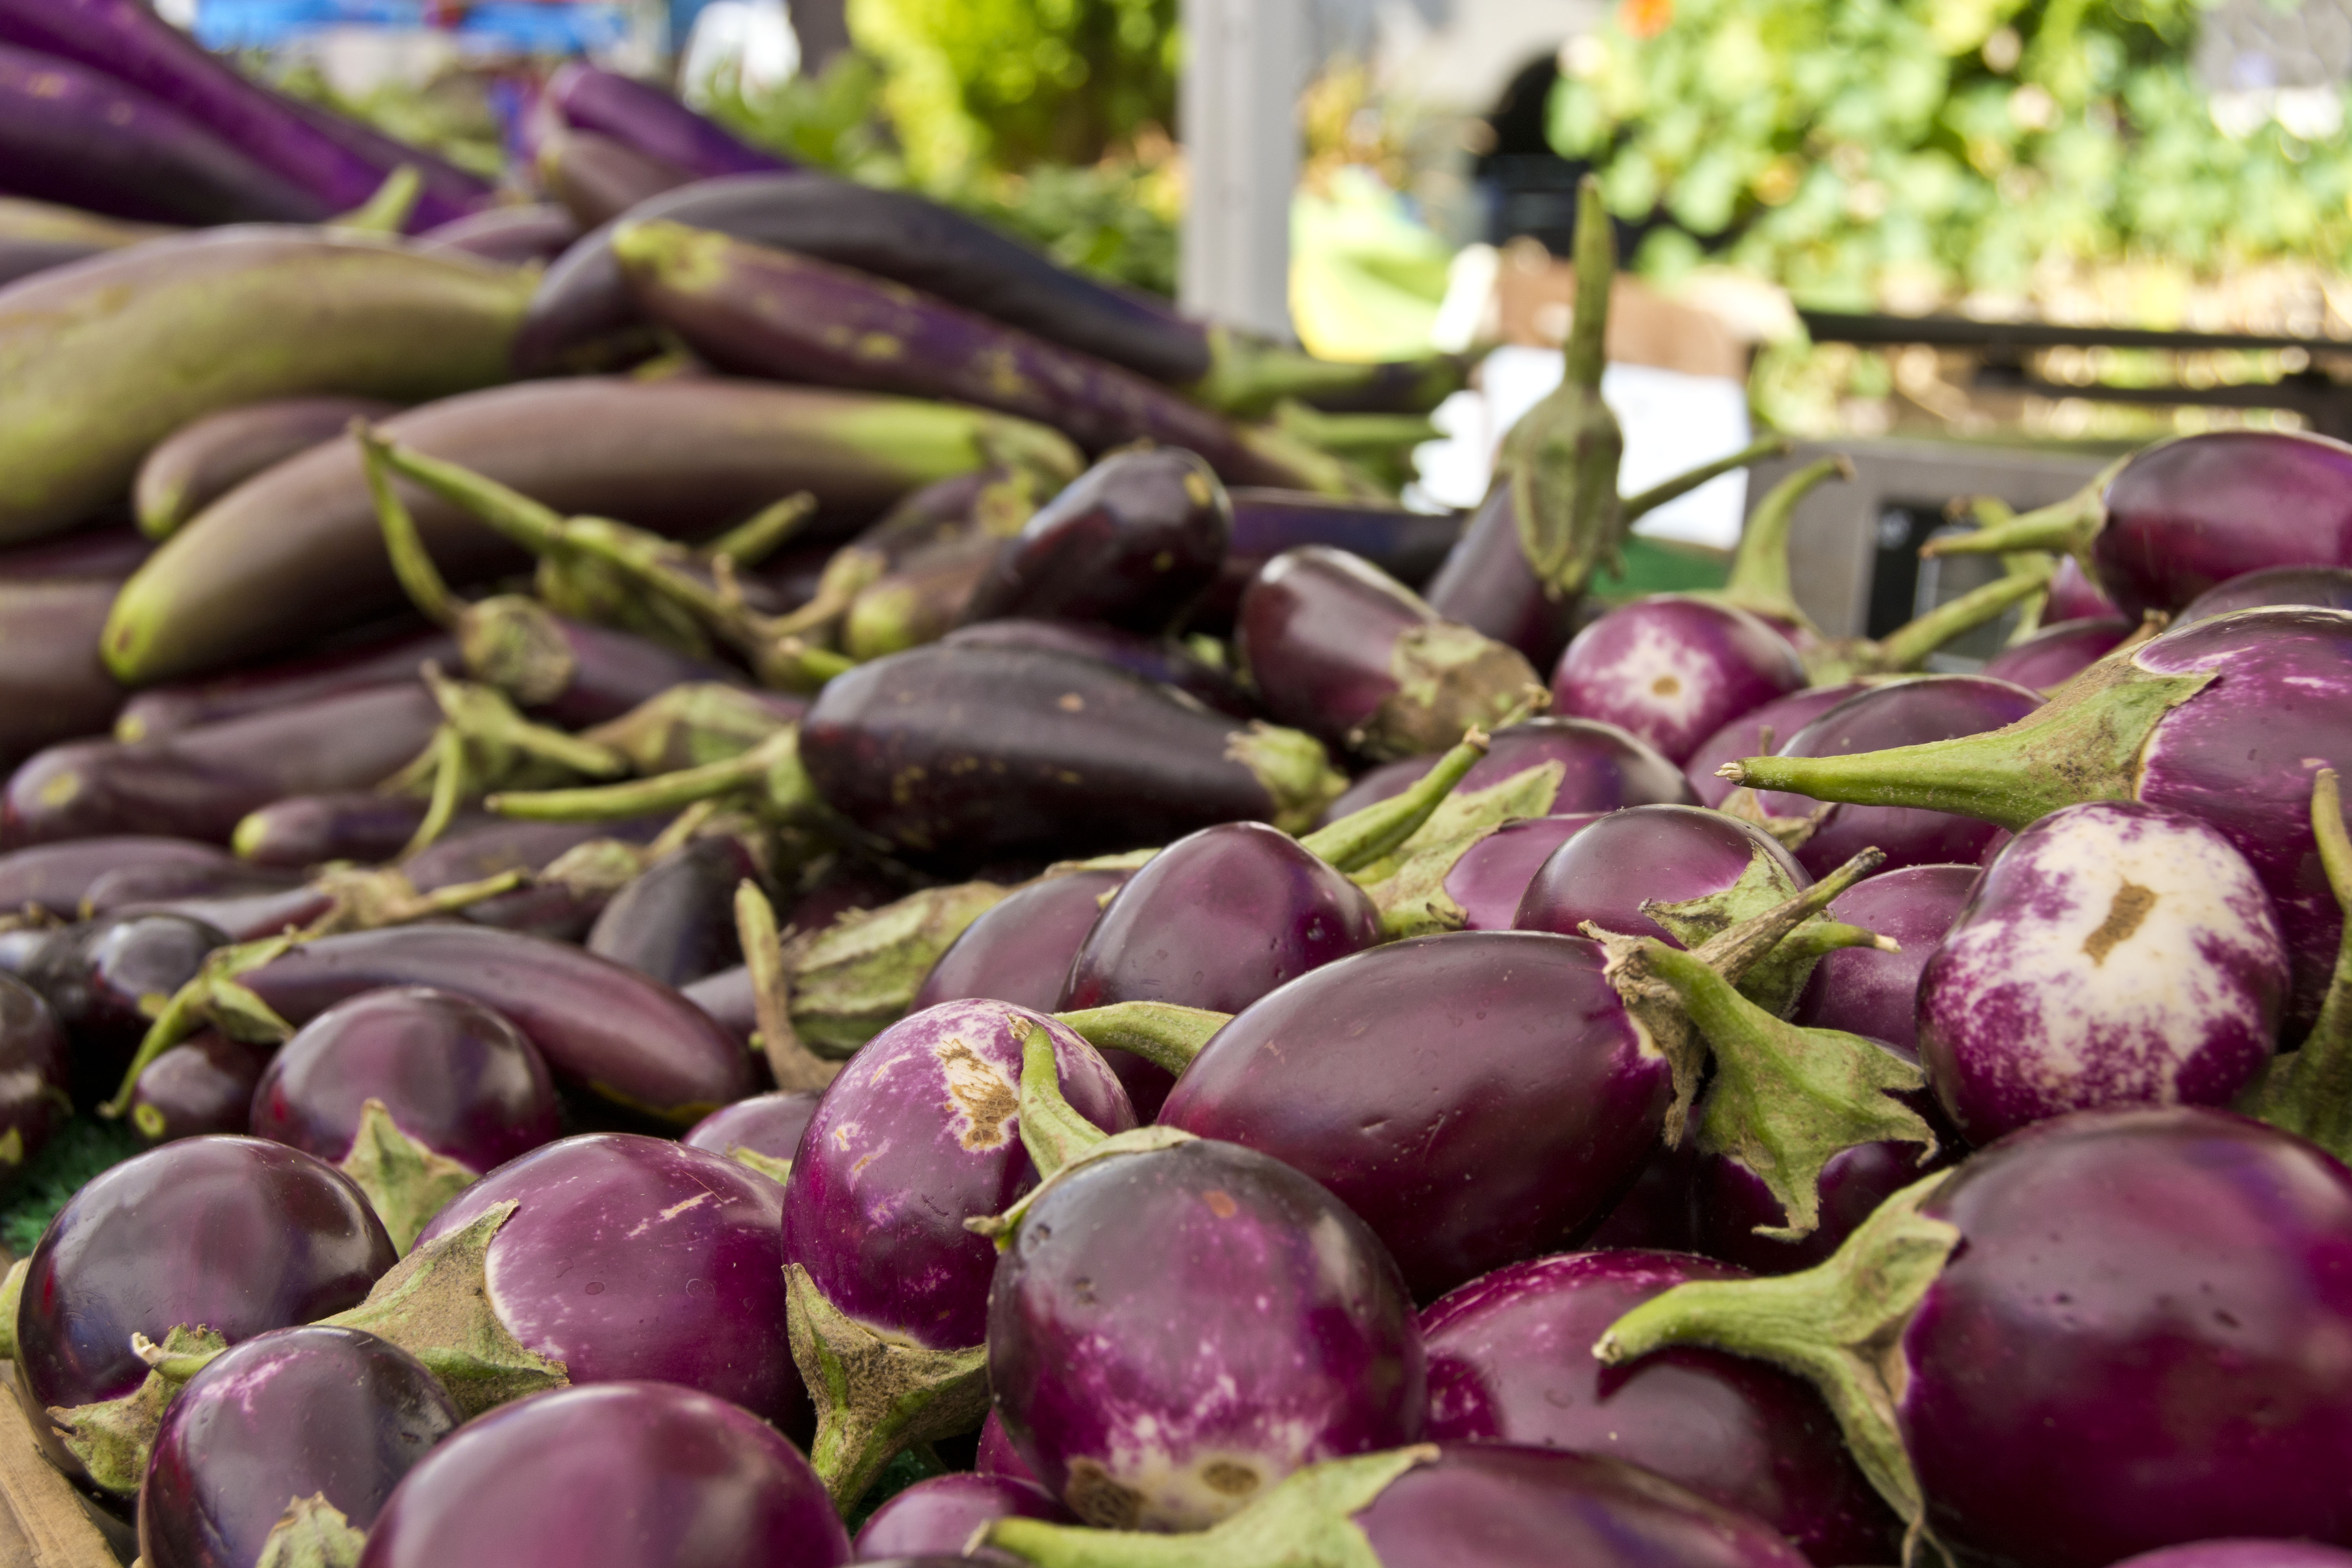 Eggplant – Not Just for Parmigiana Anymore